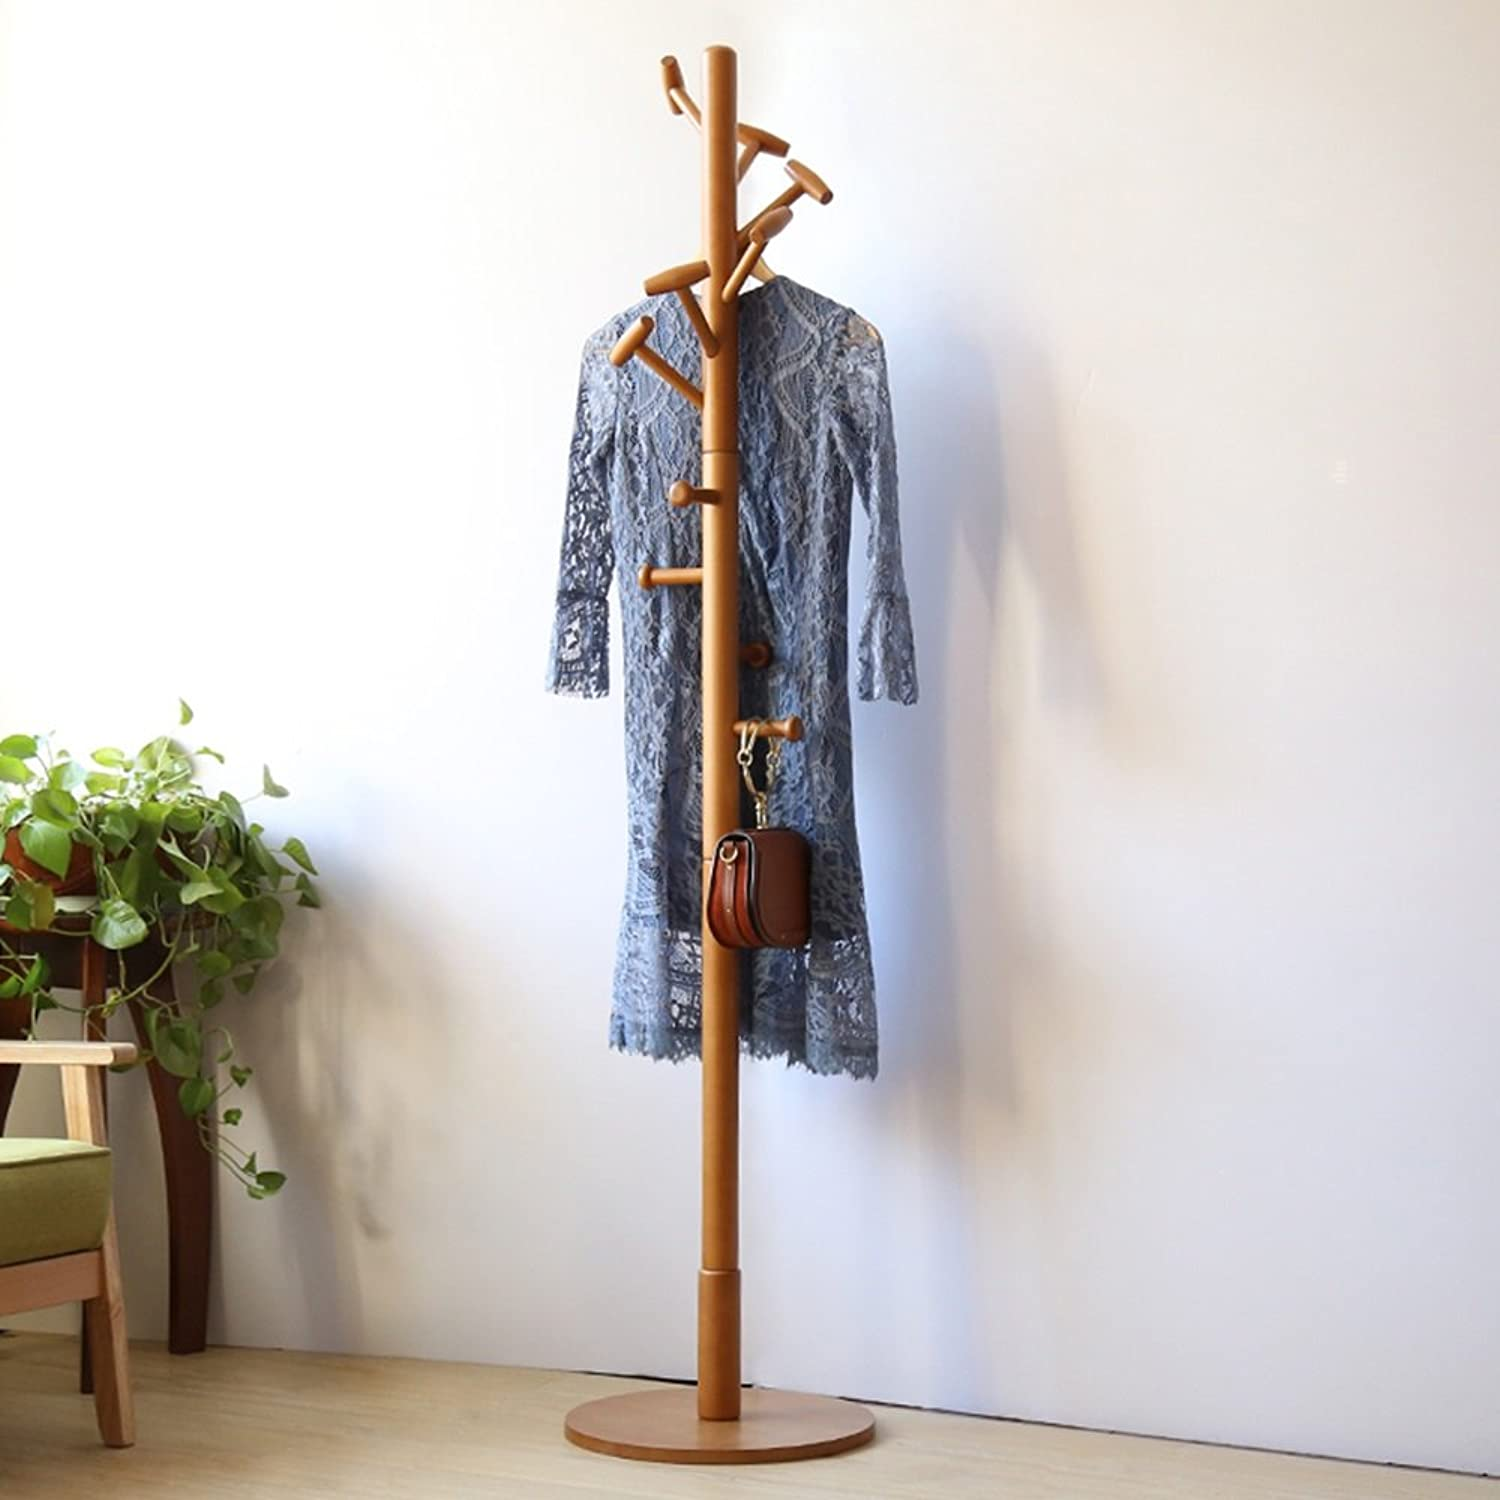 ZZHF yimaojia Coat and Hat Rack Stand Solid Wood Simple Household Single Rod Type Coat Rack (color   Wood)